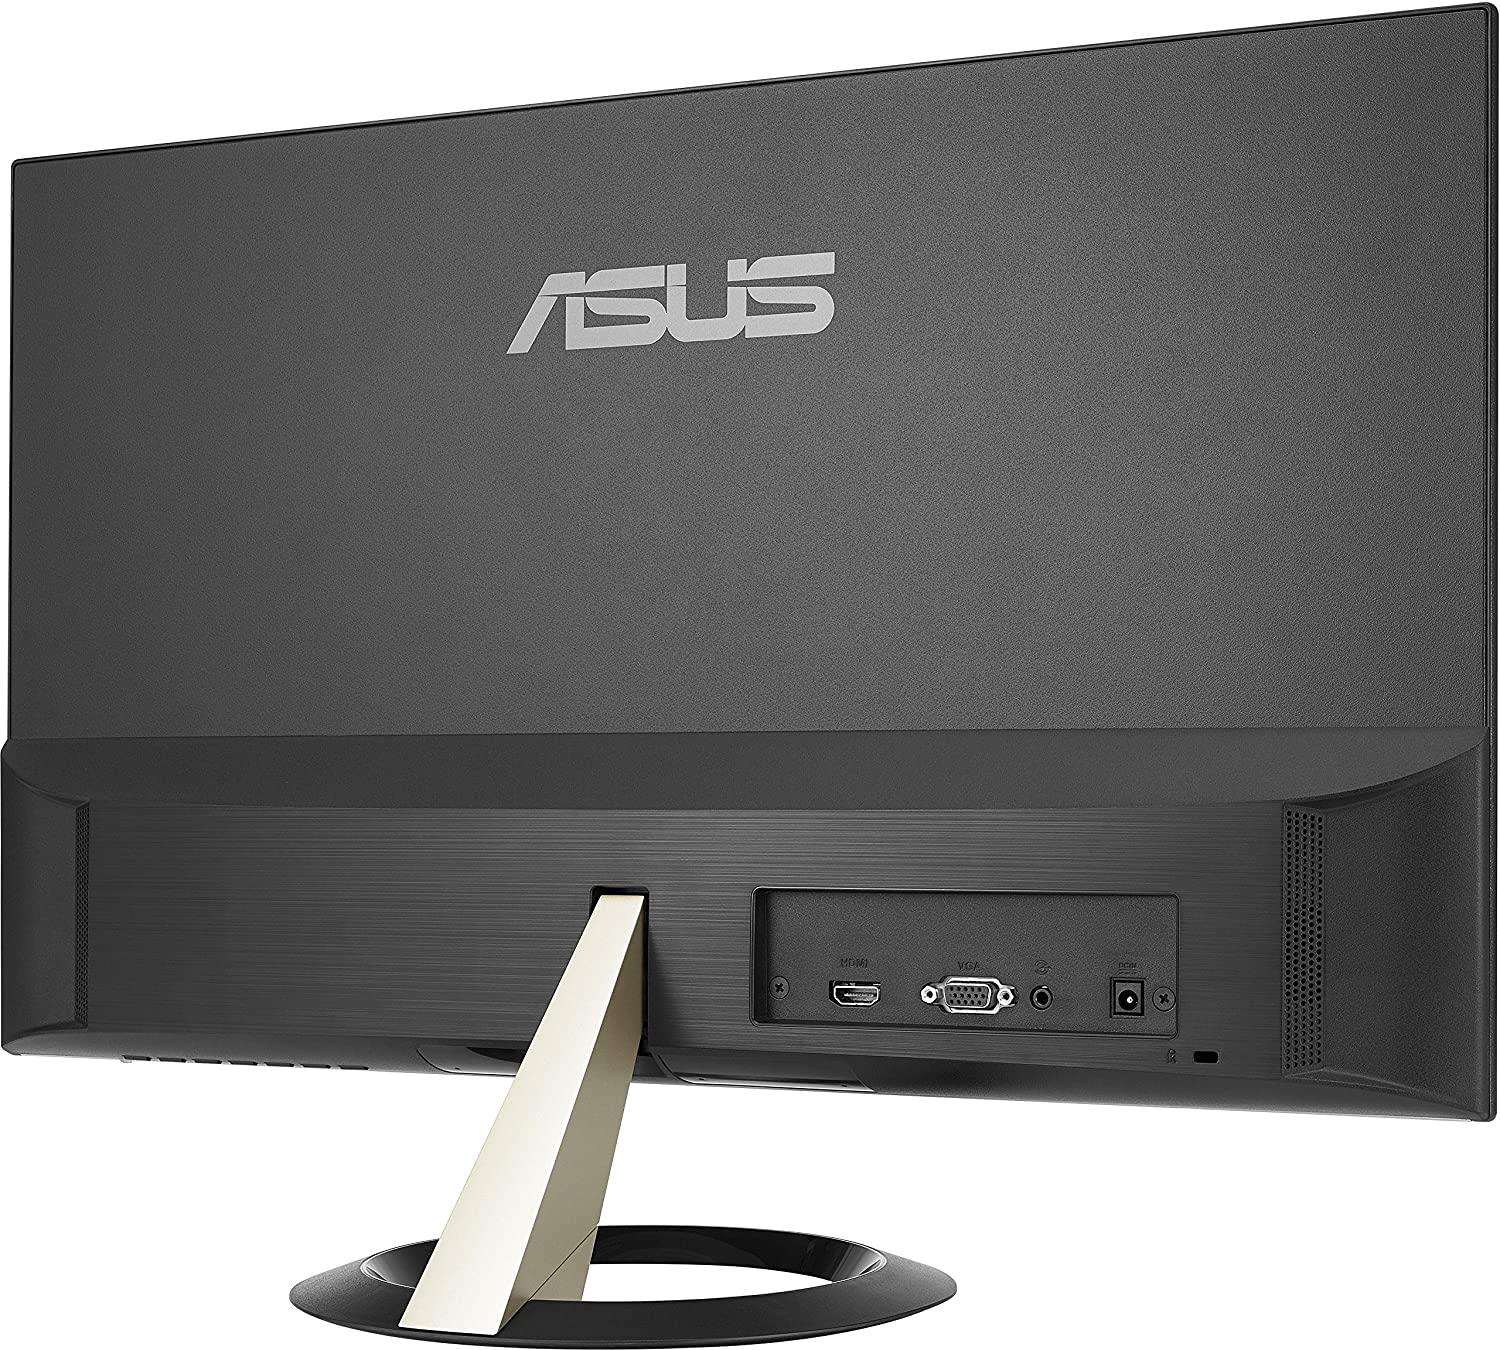 Asus Frameless Gold 215 5ms Gtg Hdmi Widescreen Lcd Monitor Led Lg 22mp68vq 22 Inch Ips Full Hd Analog Input 800000001 Ultra Slim Design Built In Speakers With And D Sub